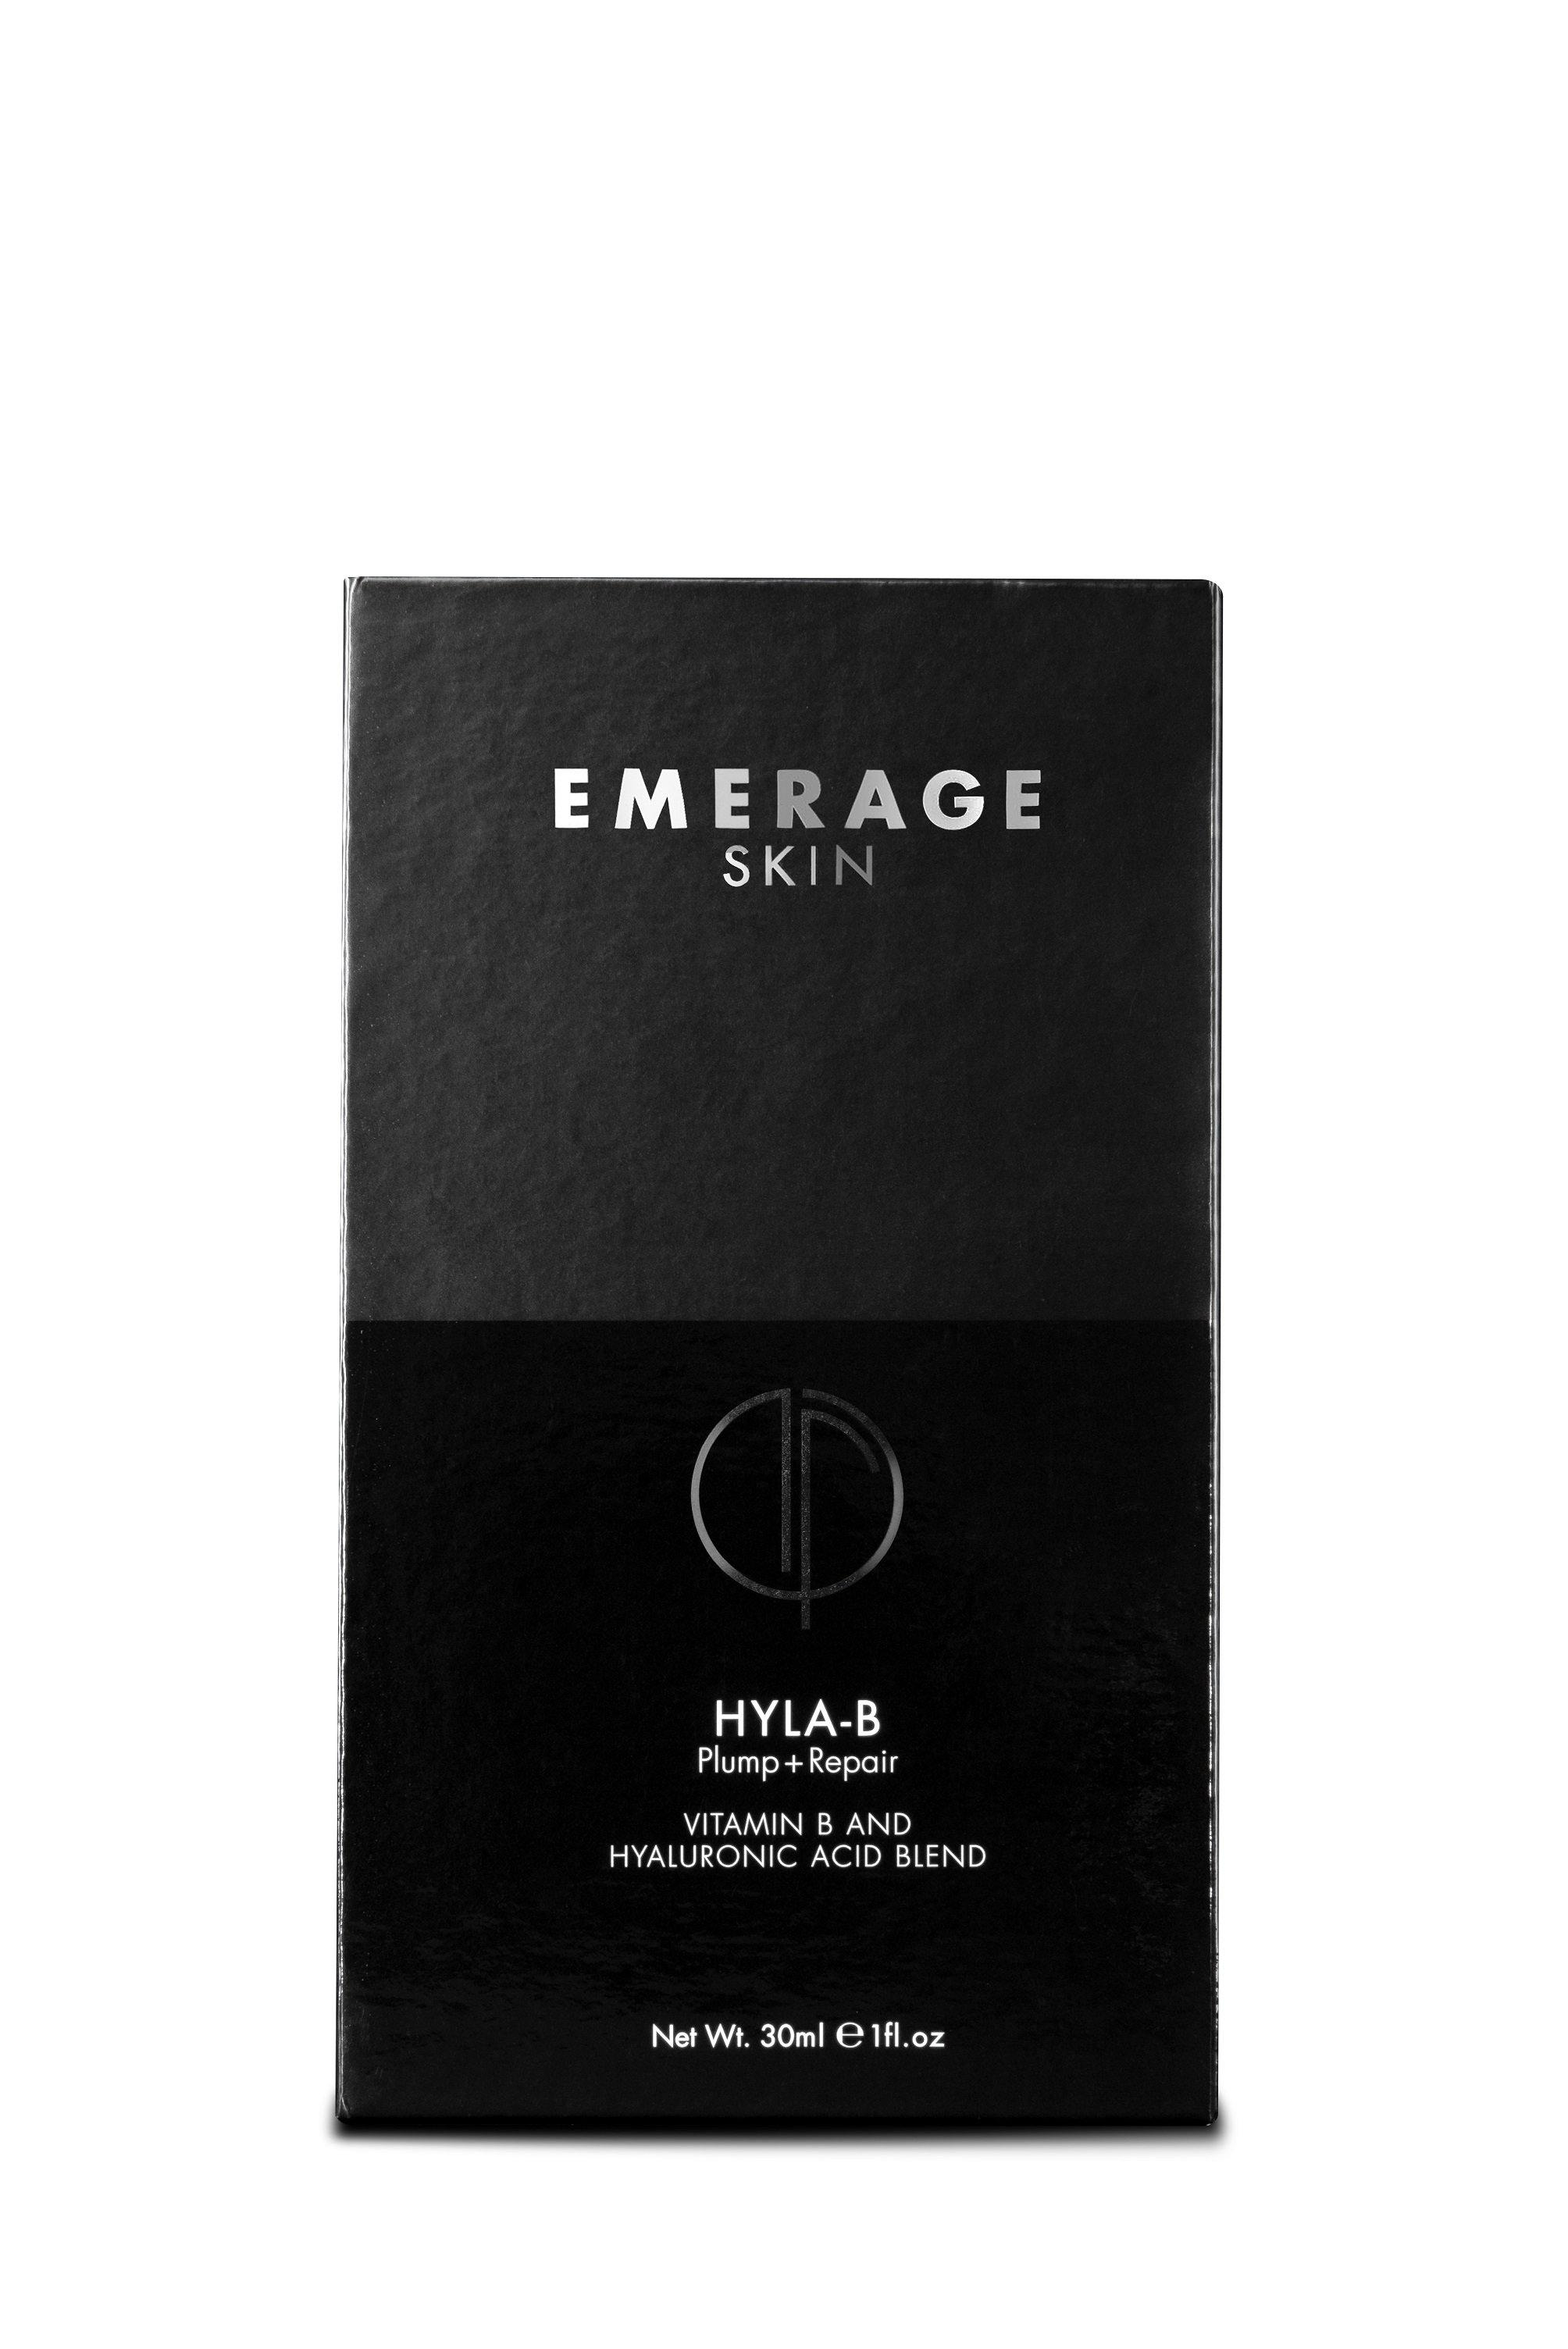 Hyla-B - Emerage Cosmetics